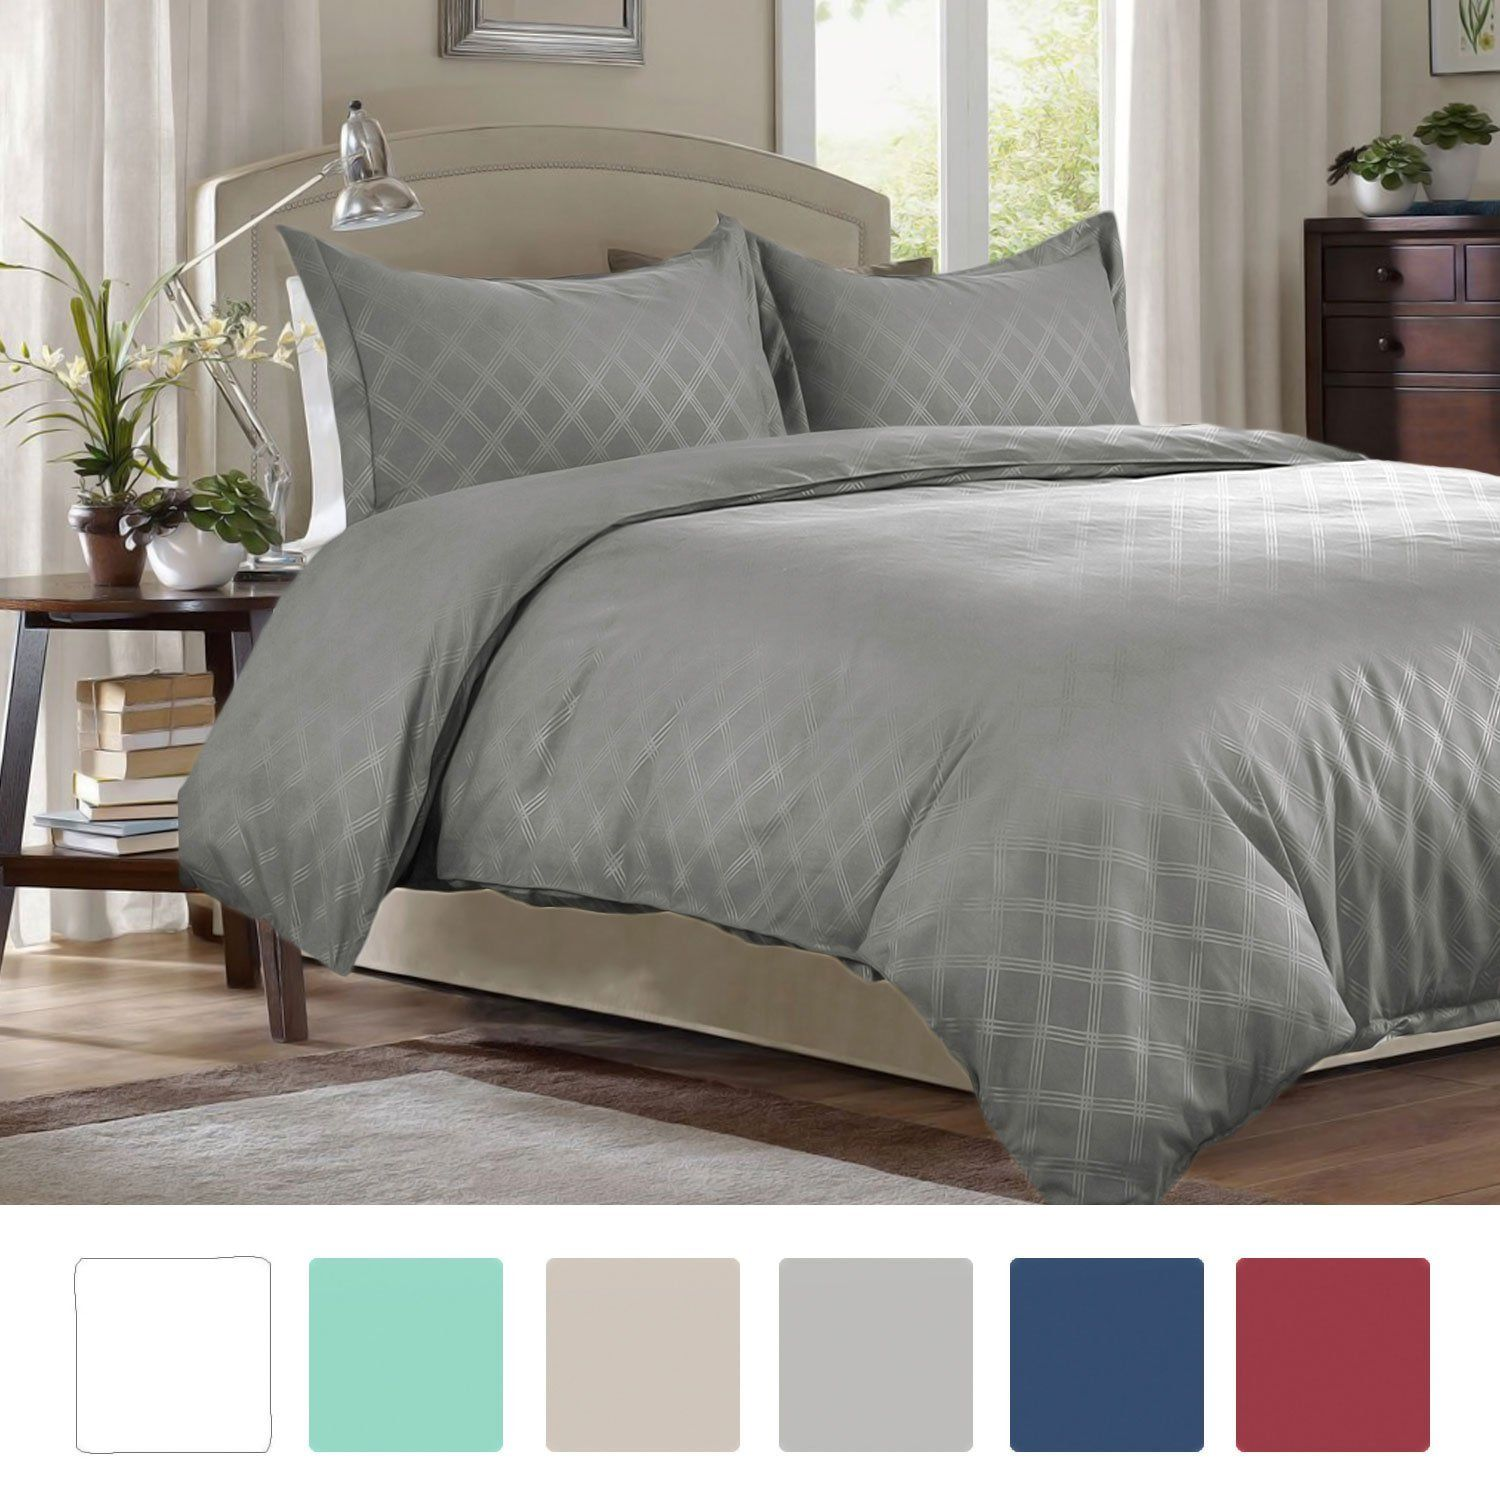 set wonderful sheets grey stupendous ter queen ideas bedding linen cover shabby mulberry a awful excellent blue ile pink and infant full size pom duvet white clearance baby silk sheet about organic floral all crib of excellentink sets